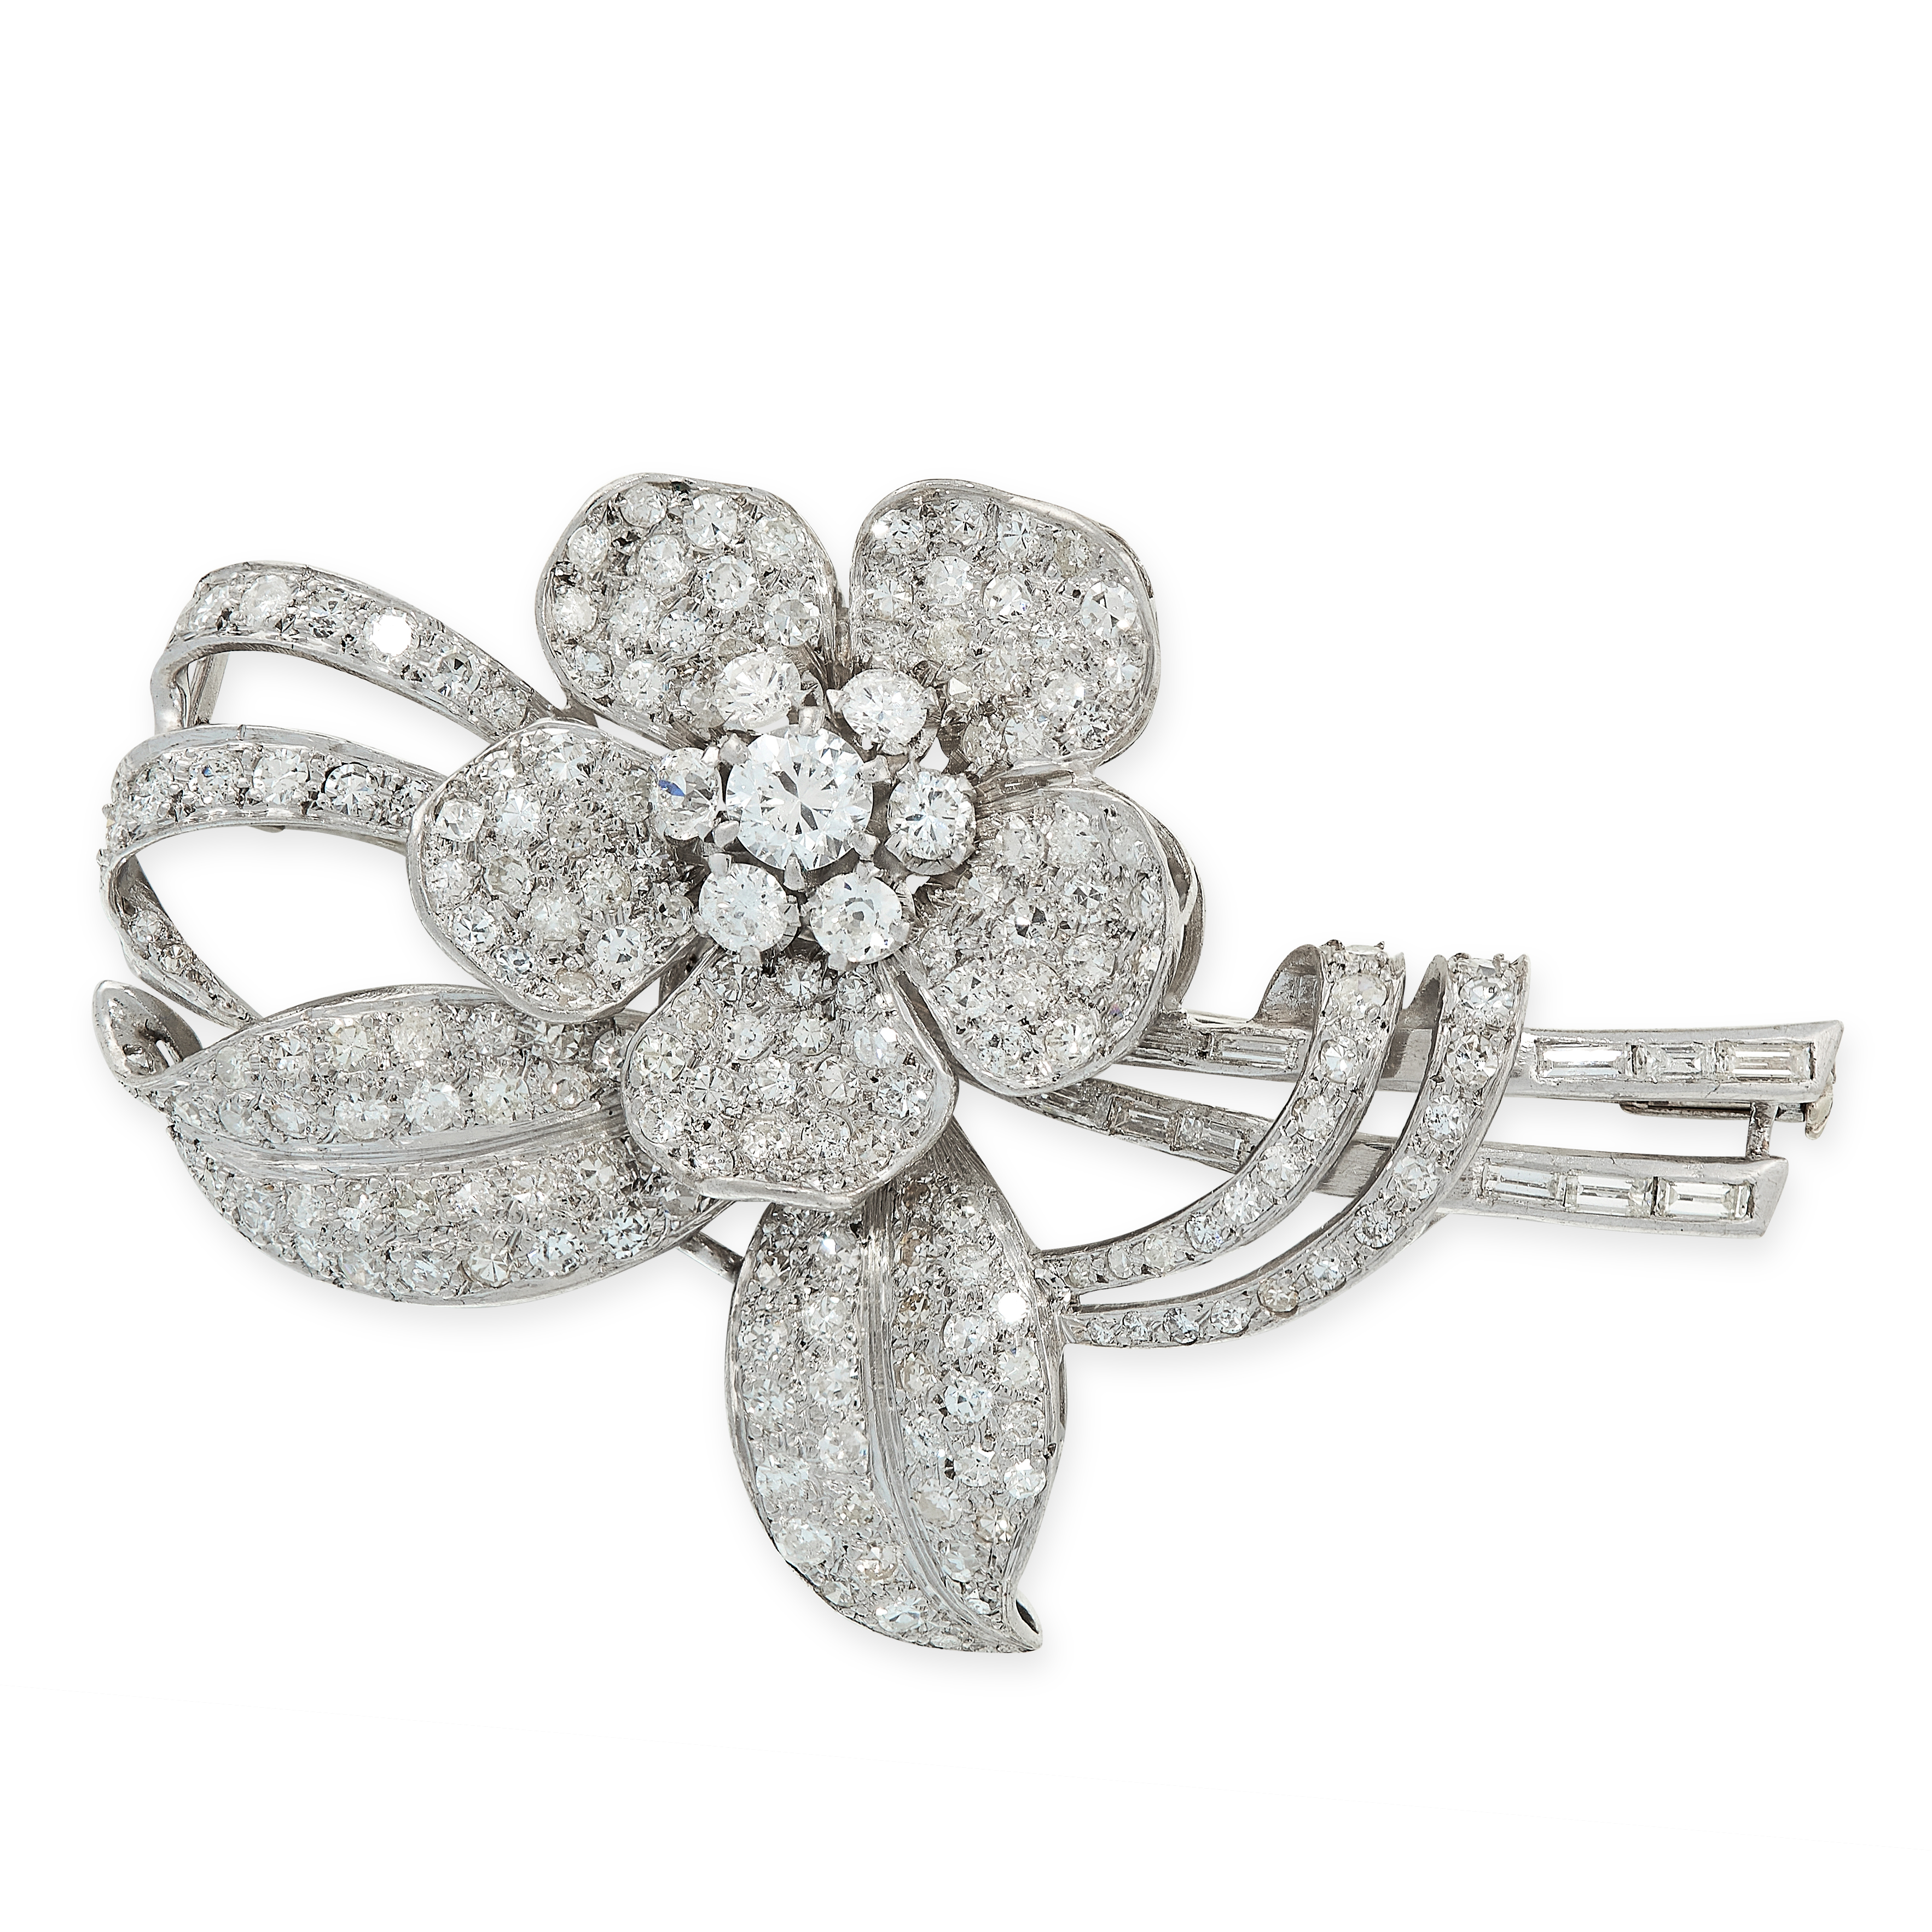 VINTAGE DIAMOND FLOWER SPRAY BROOCH designed as a flower wrapped in a ribbon, jewelled allover